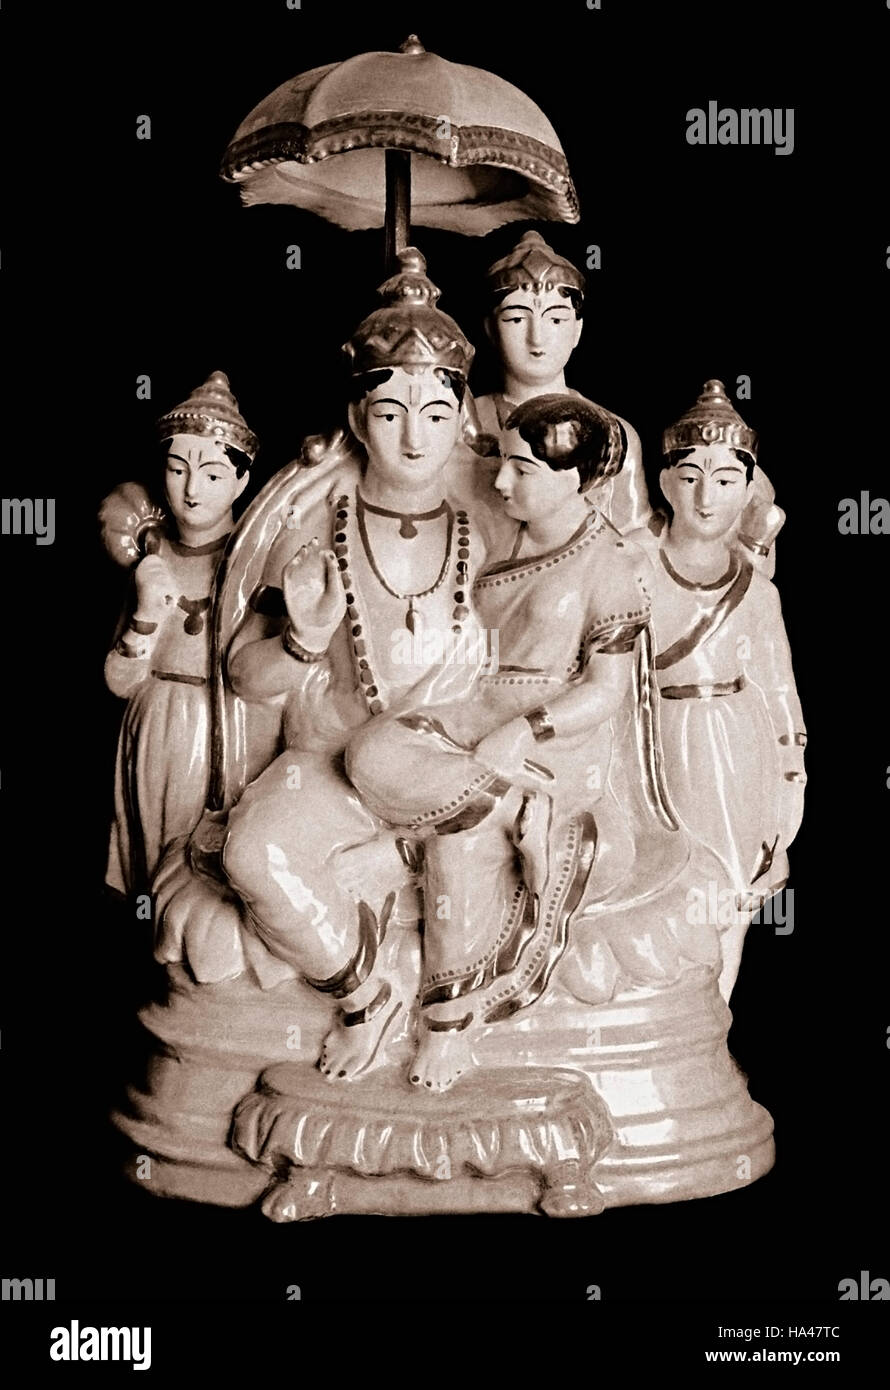 Statue of Lord Rama with his wife Sita and his brothers. - Stock Image